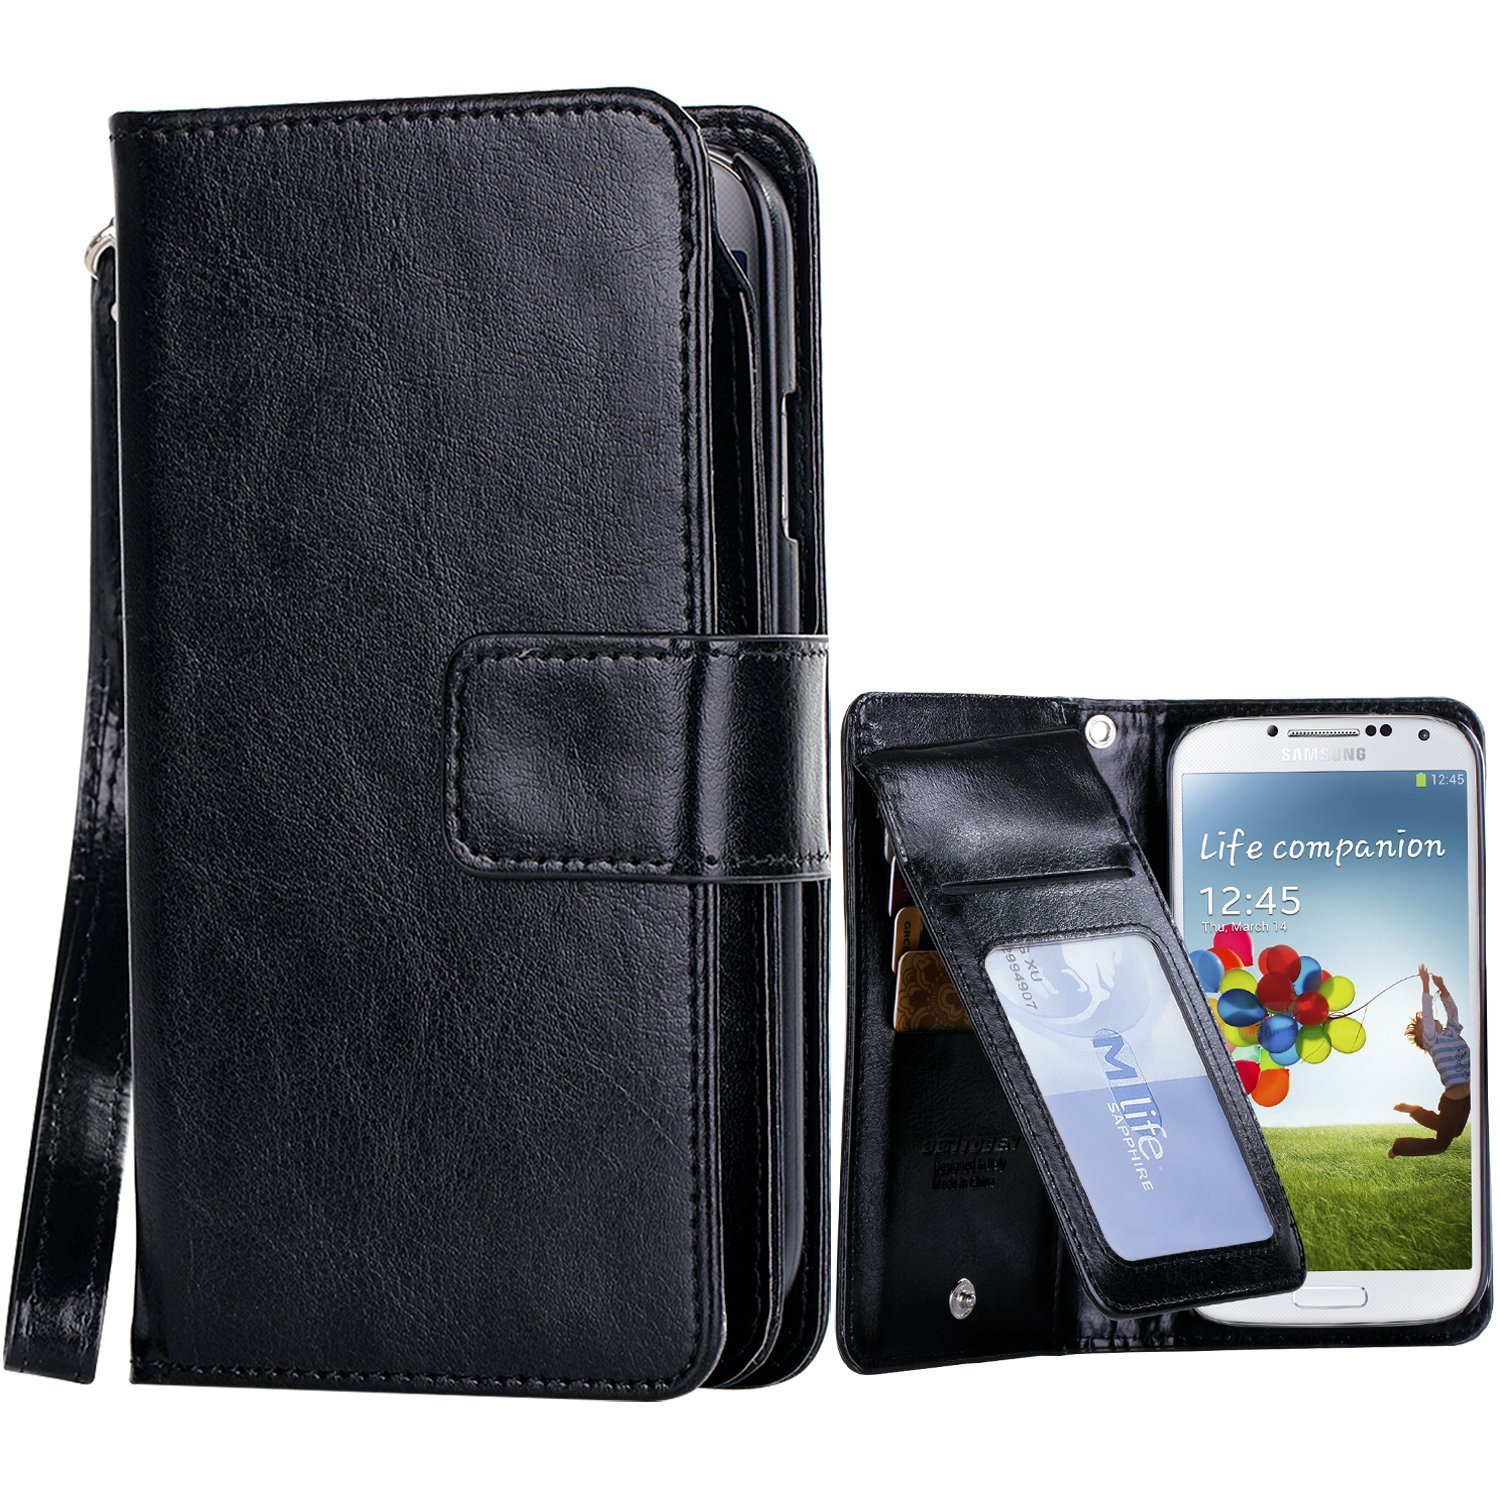 Galaxy S4 Case, Samsung S4 Wallet Case, BENTOBEN Faux Leather Magnetic Flip Wallet Press Button Case Cover with Card Holder Cash Pouch Wrist Strap for Samsung Galaxy S4/I545Z/S975/L720Z/M919Z, Black